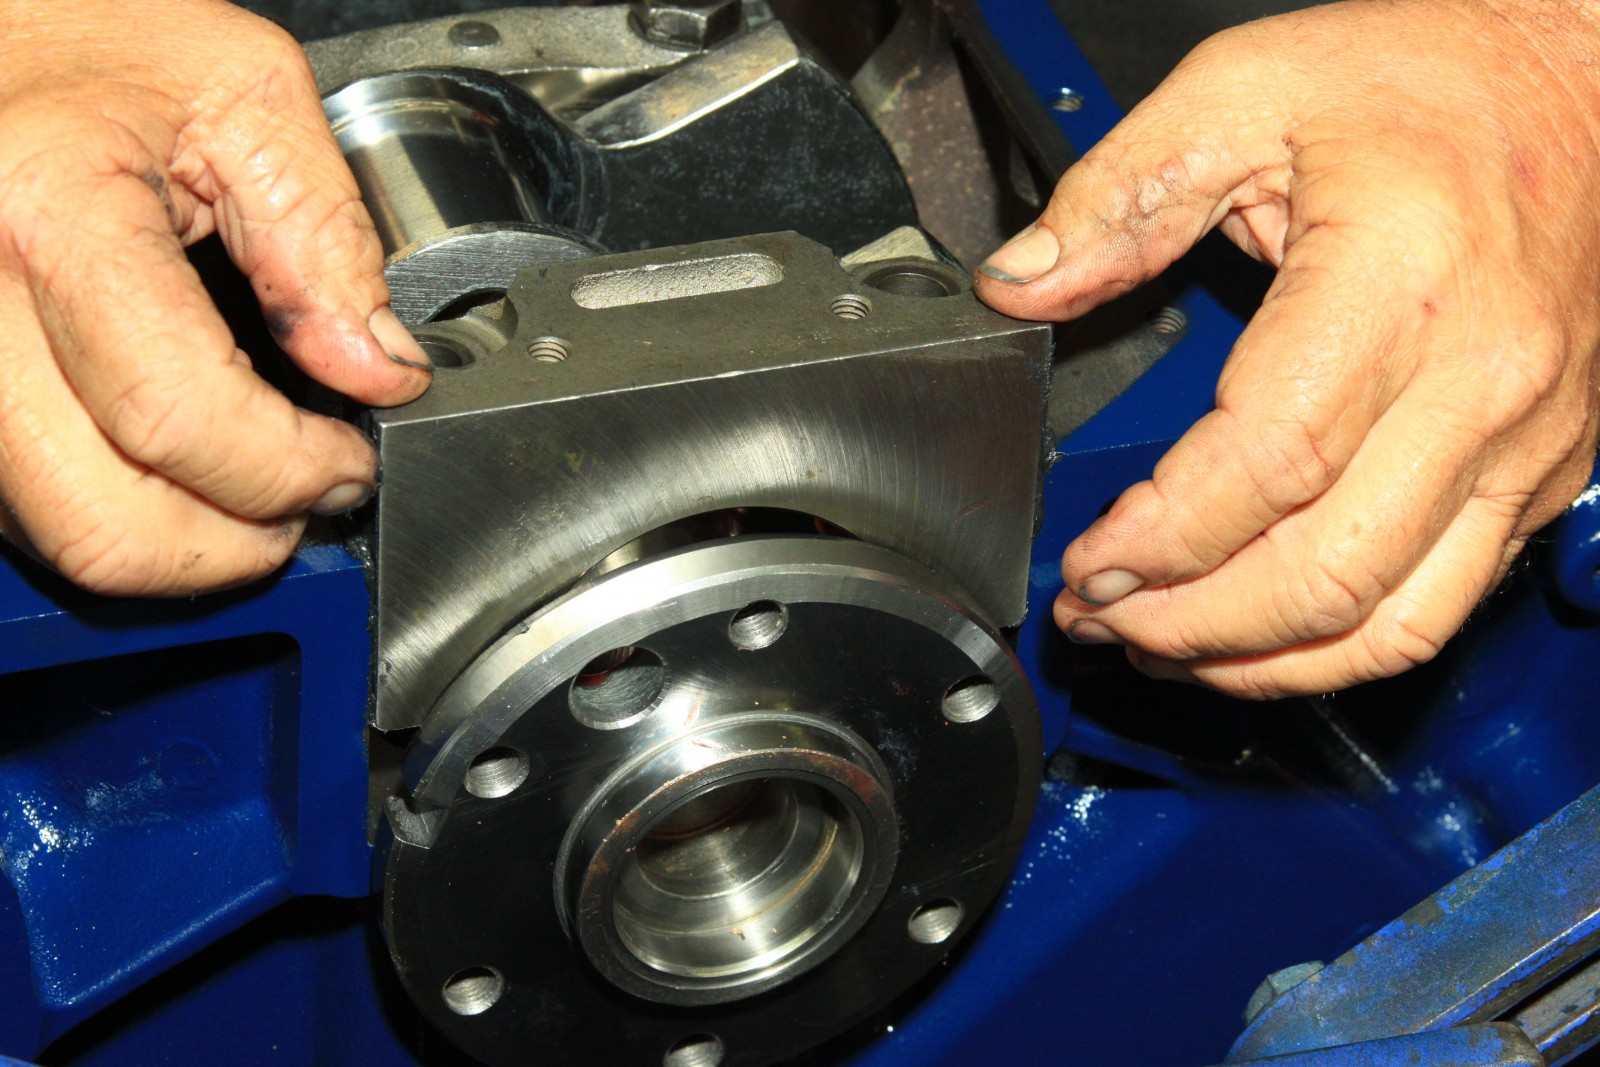 Stroker FE: Build a Hot Ford 390/431FE Stroker with Help